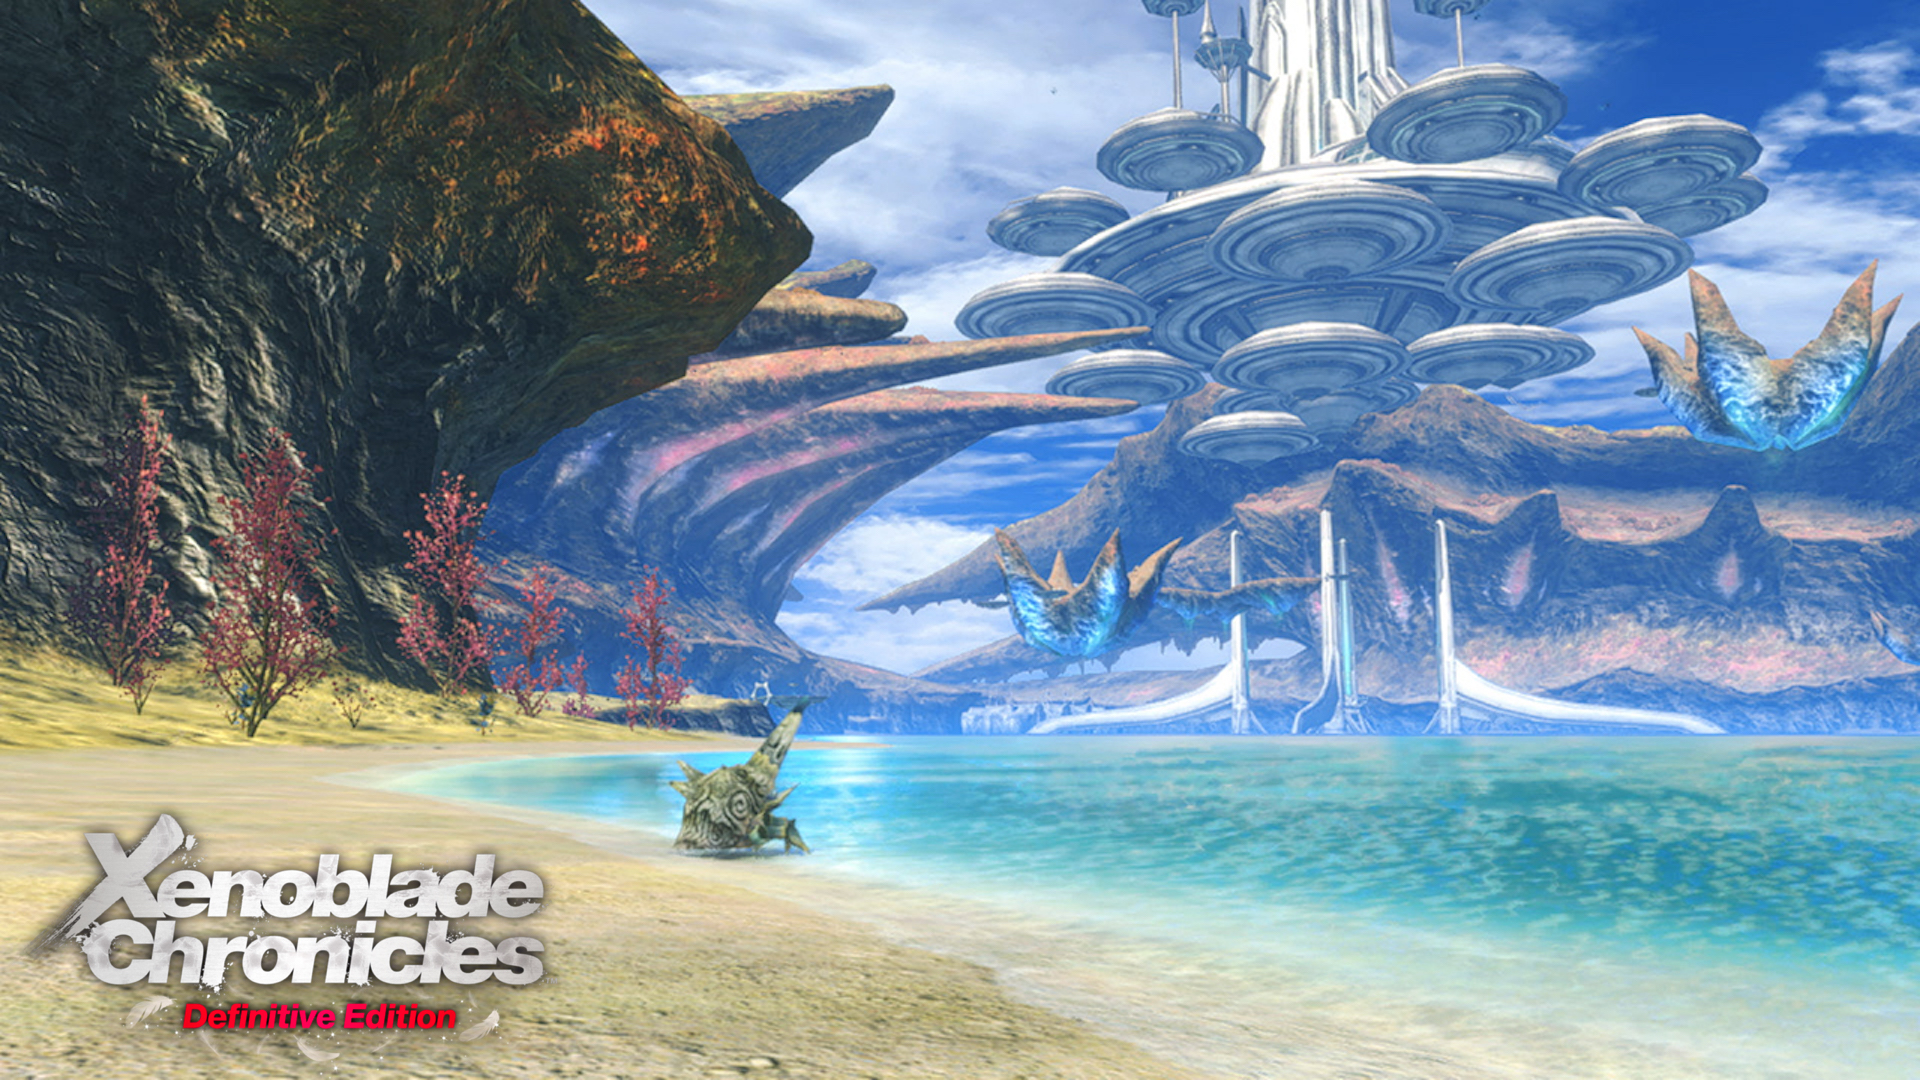 xenoblade chronicles